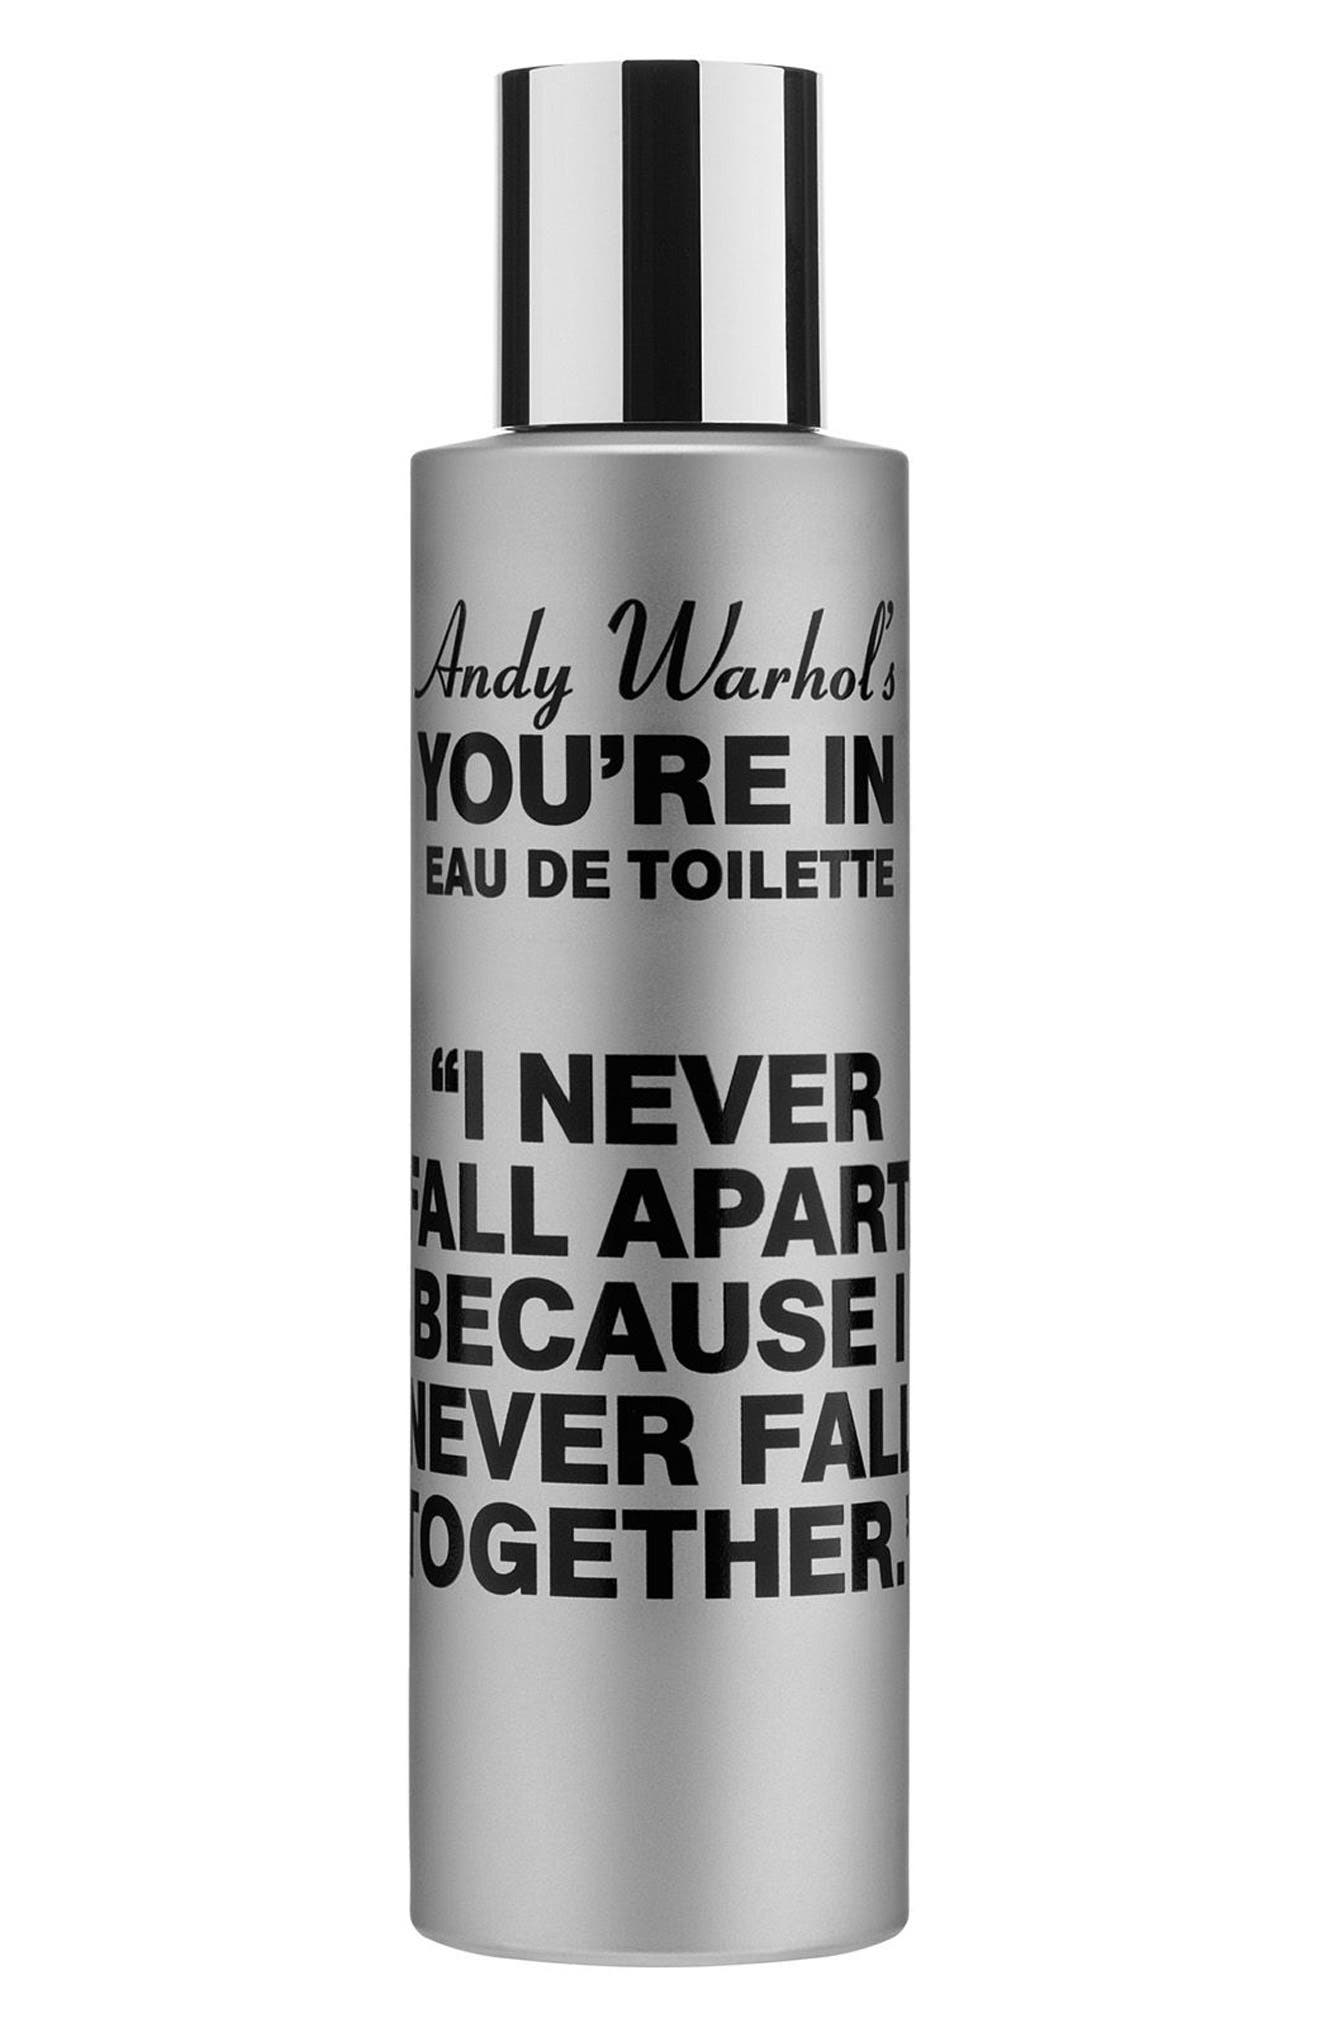 COMME DES GARÇONS Andy Warhol You're In Unisex Eau de Toilette, Main, color, I NEVER FALL